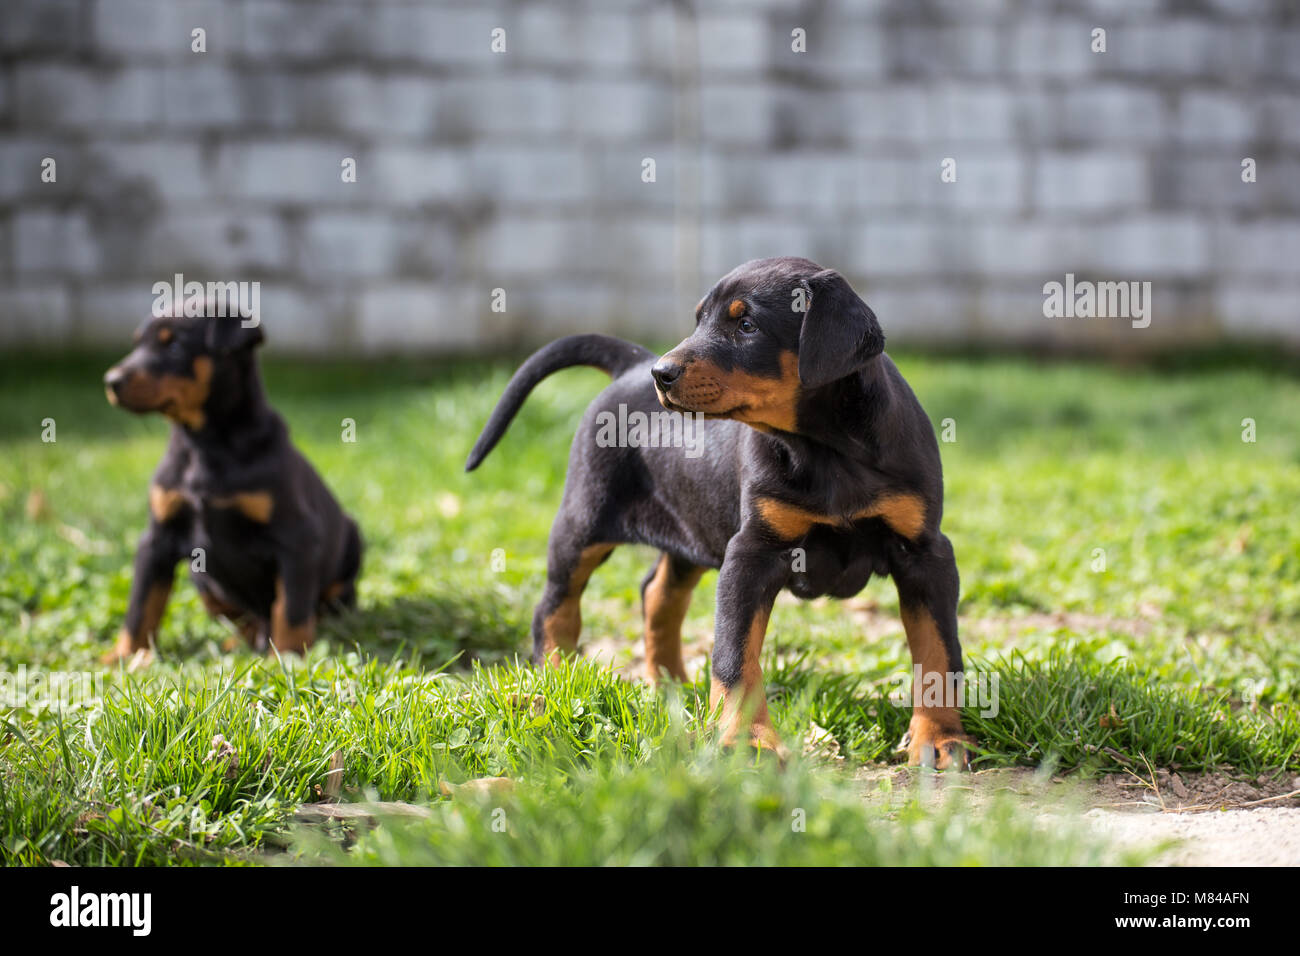 dobermann not pinscher stock photos dobermann not pinscher stock images alamy. Black Bedroom Furniture Sets. Home Design Ideas